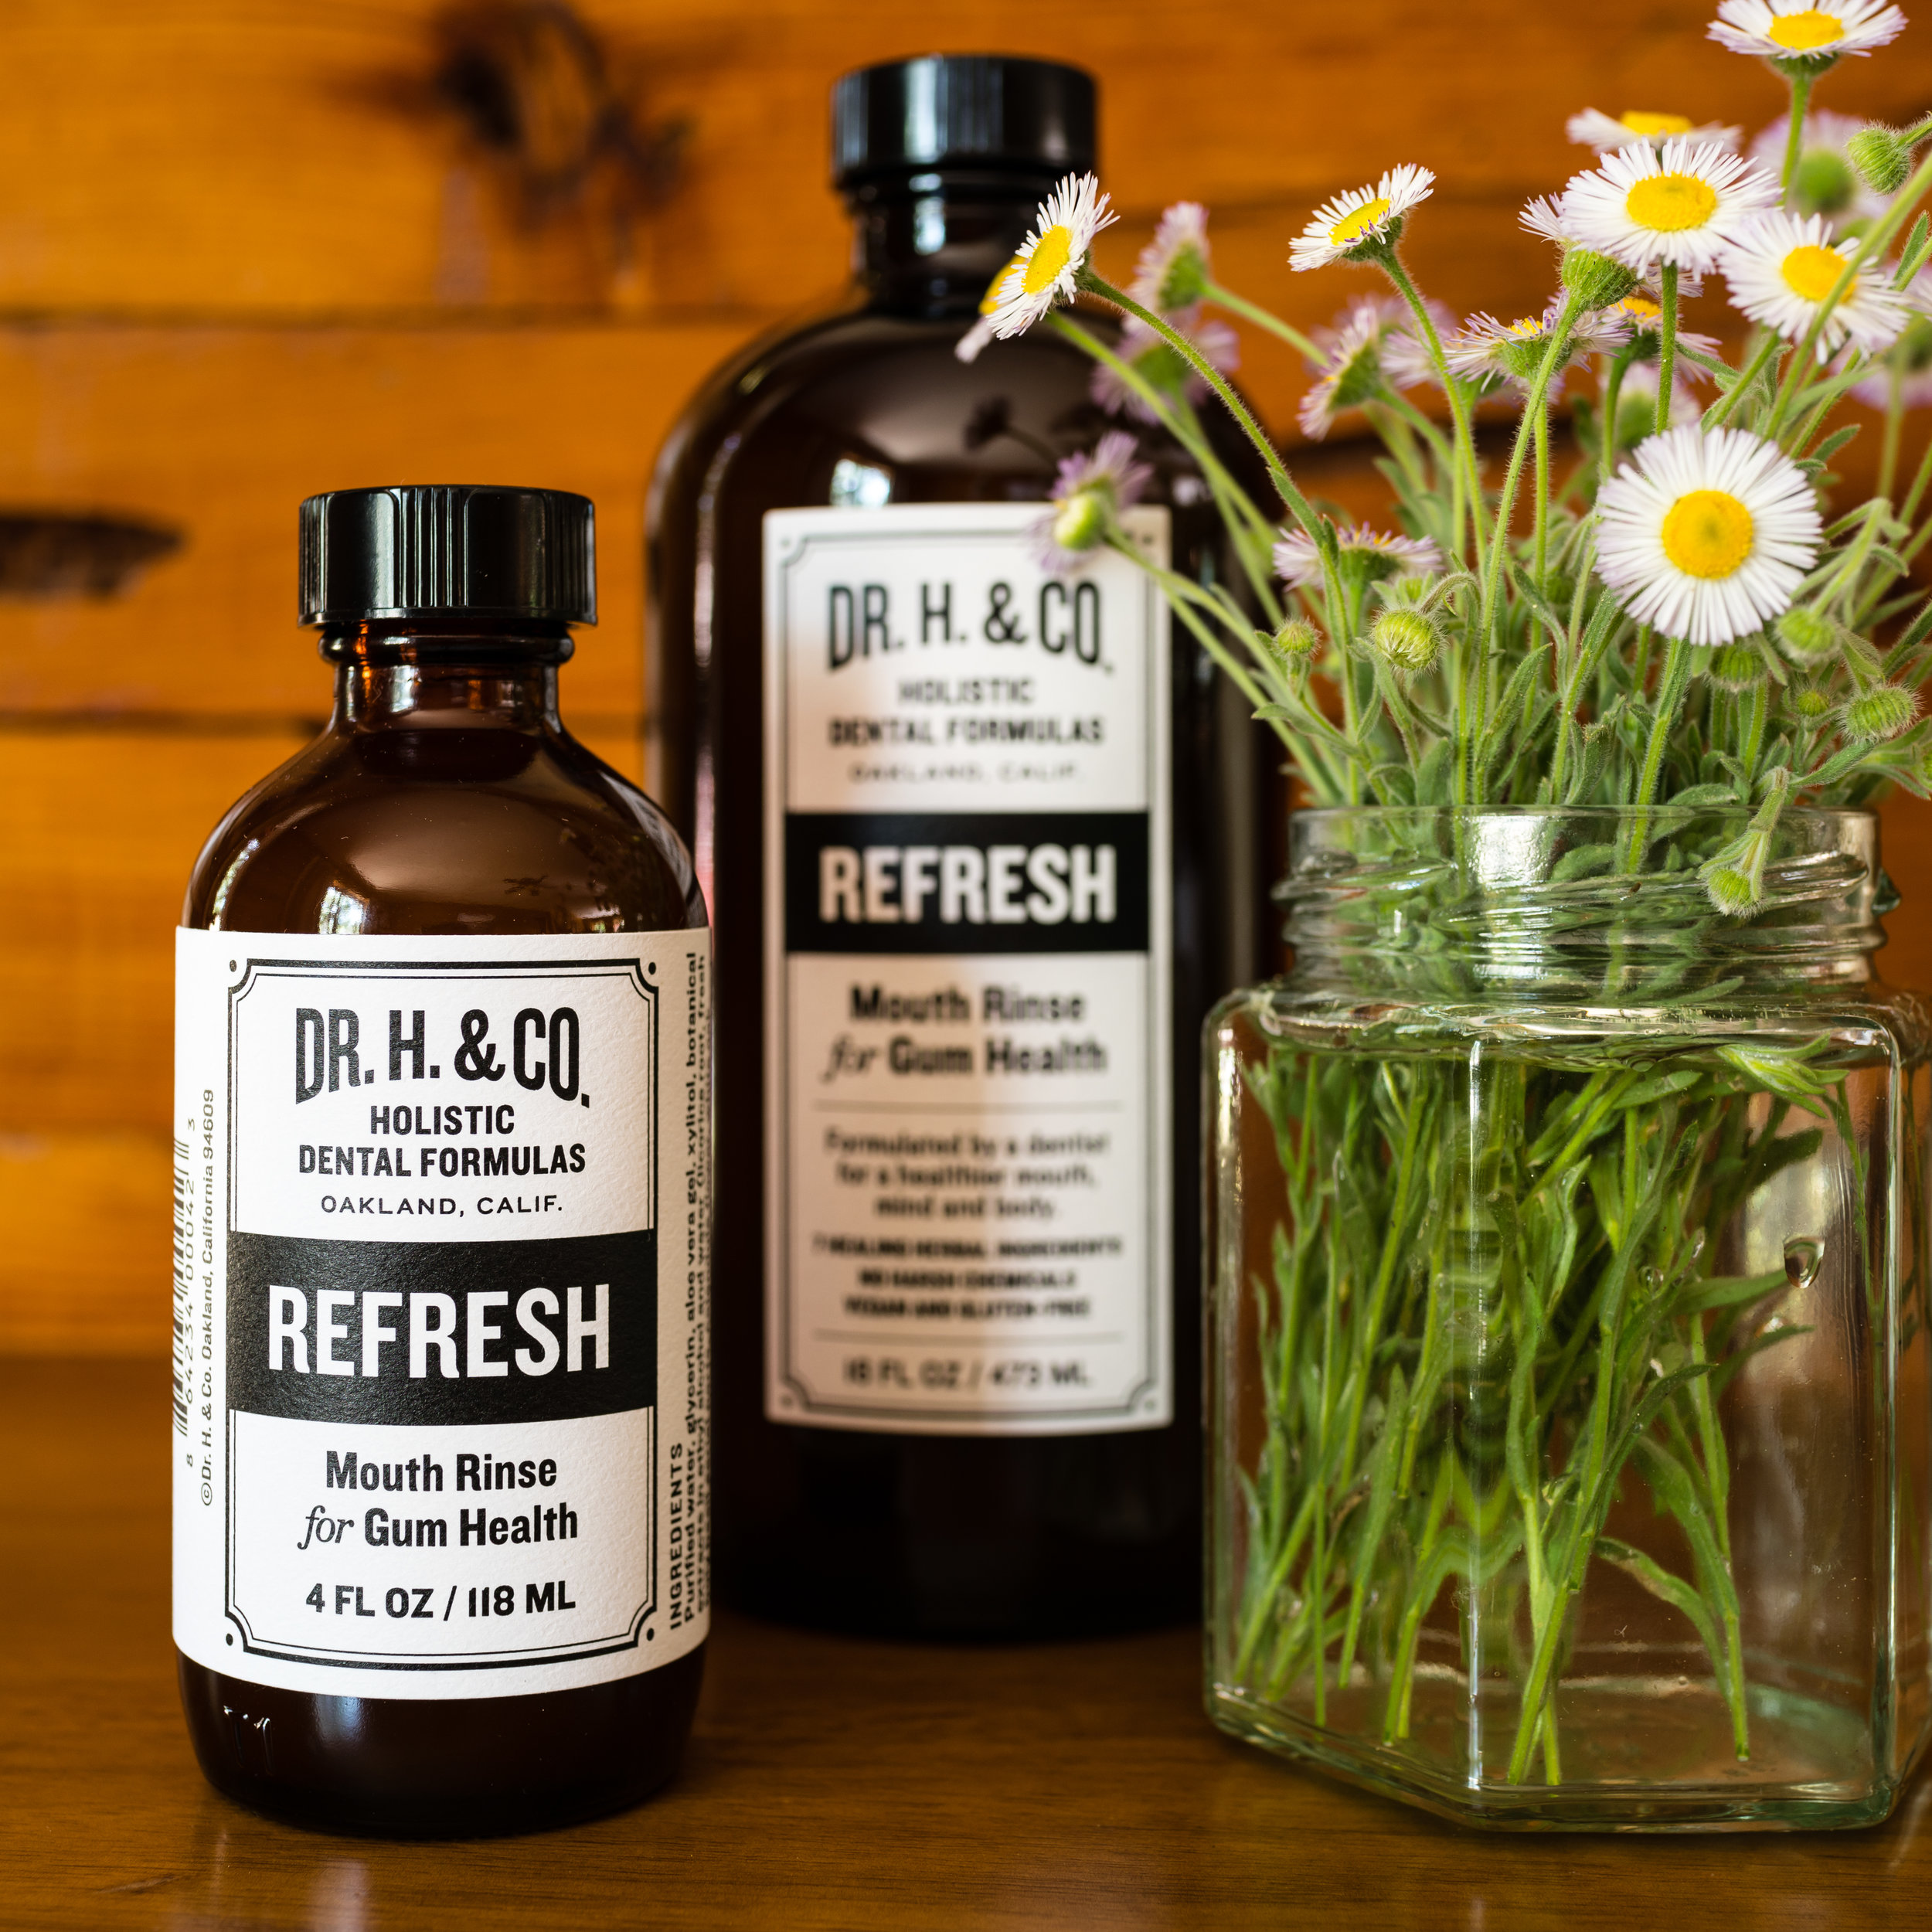 Refresh Mouthwash - All Natural Herbal & Holistic Mouthwash